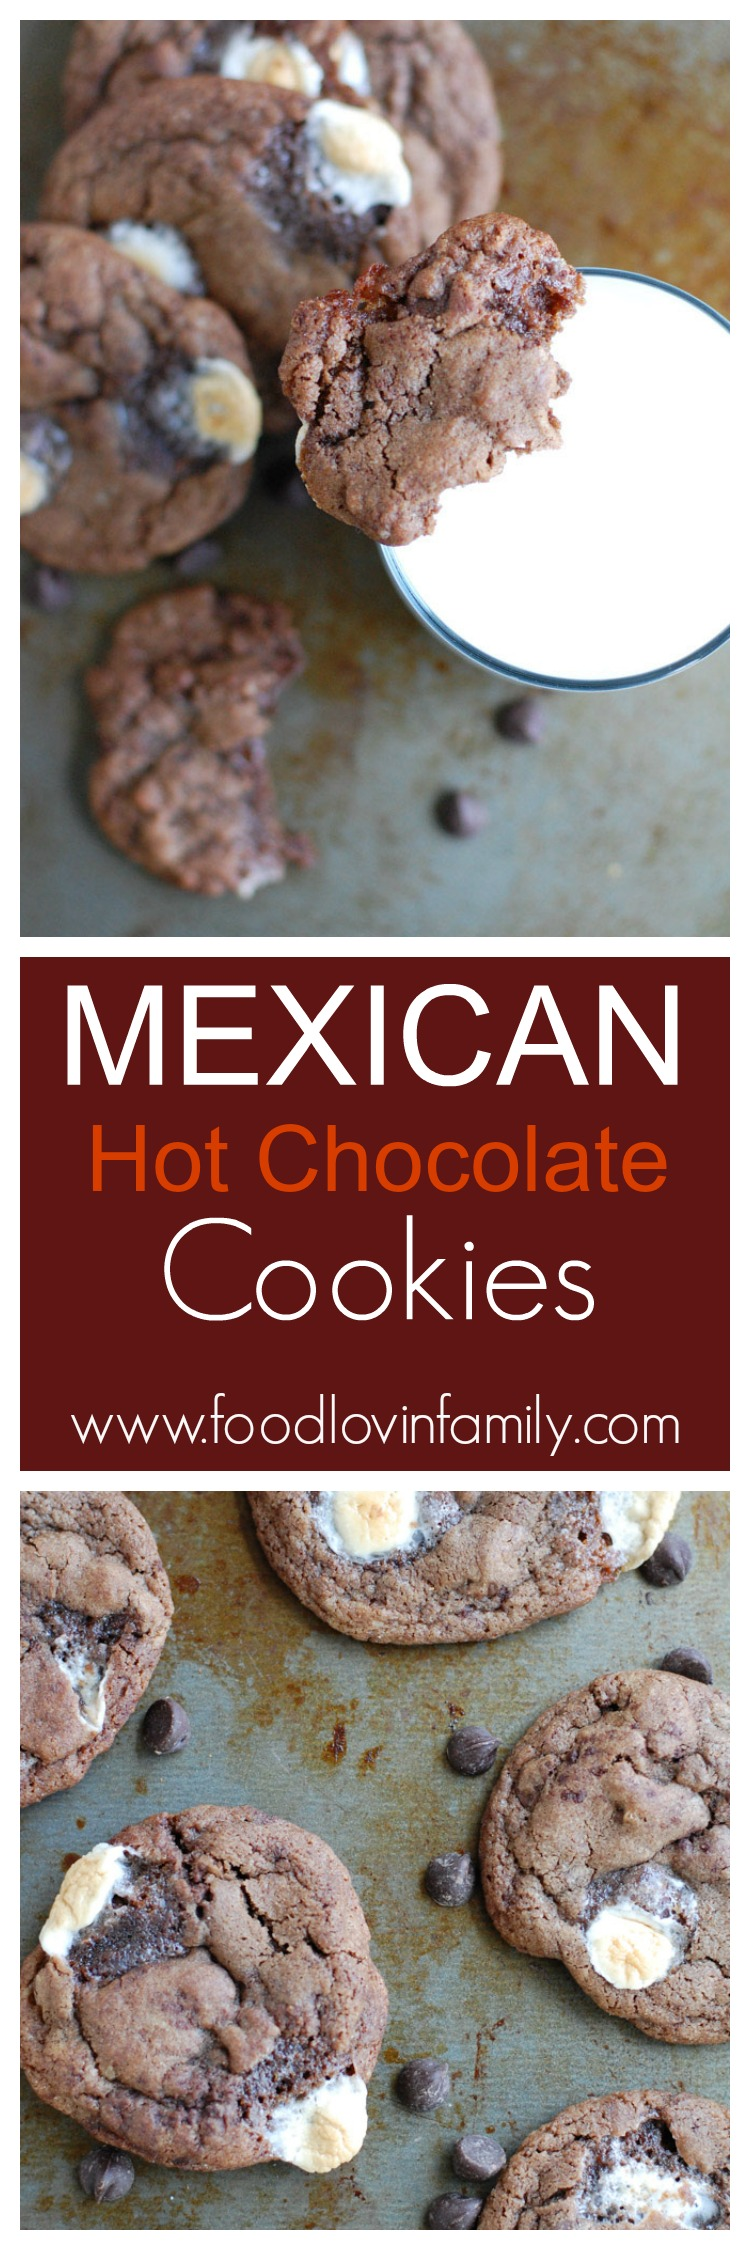 Mexican Hot Chocolate cookies are the perfect mix of cinnamon, chocolate, and a touch of spice.